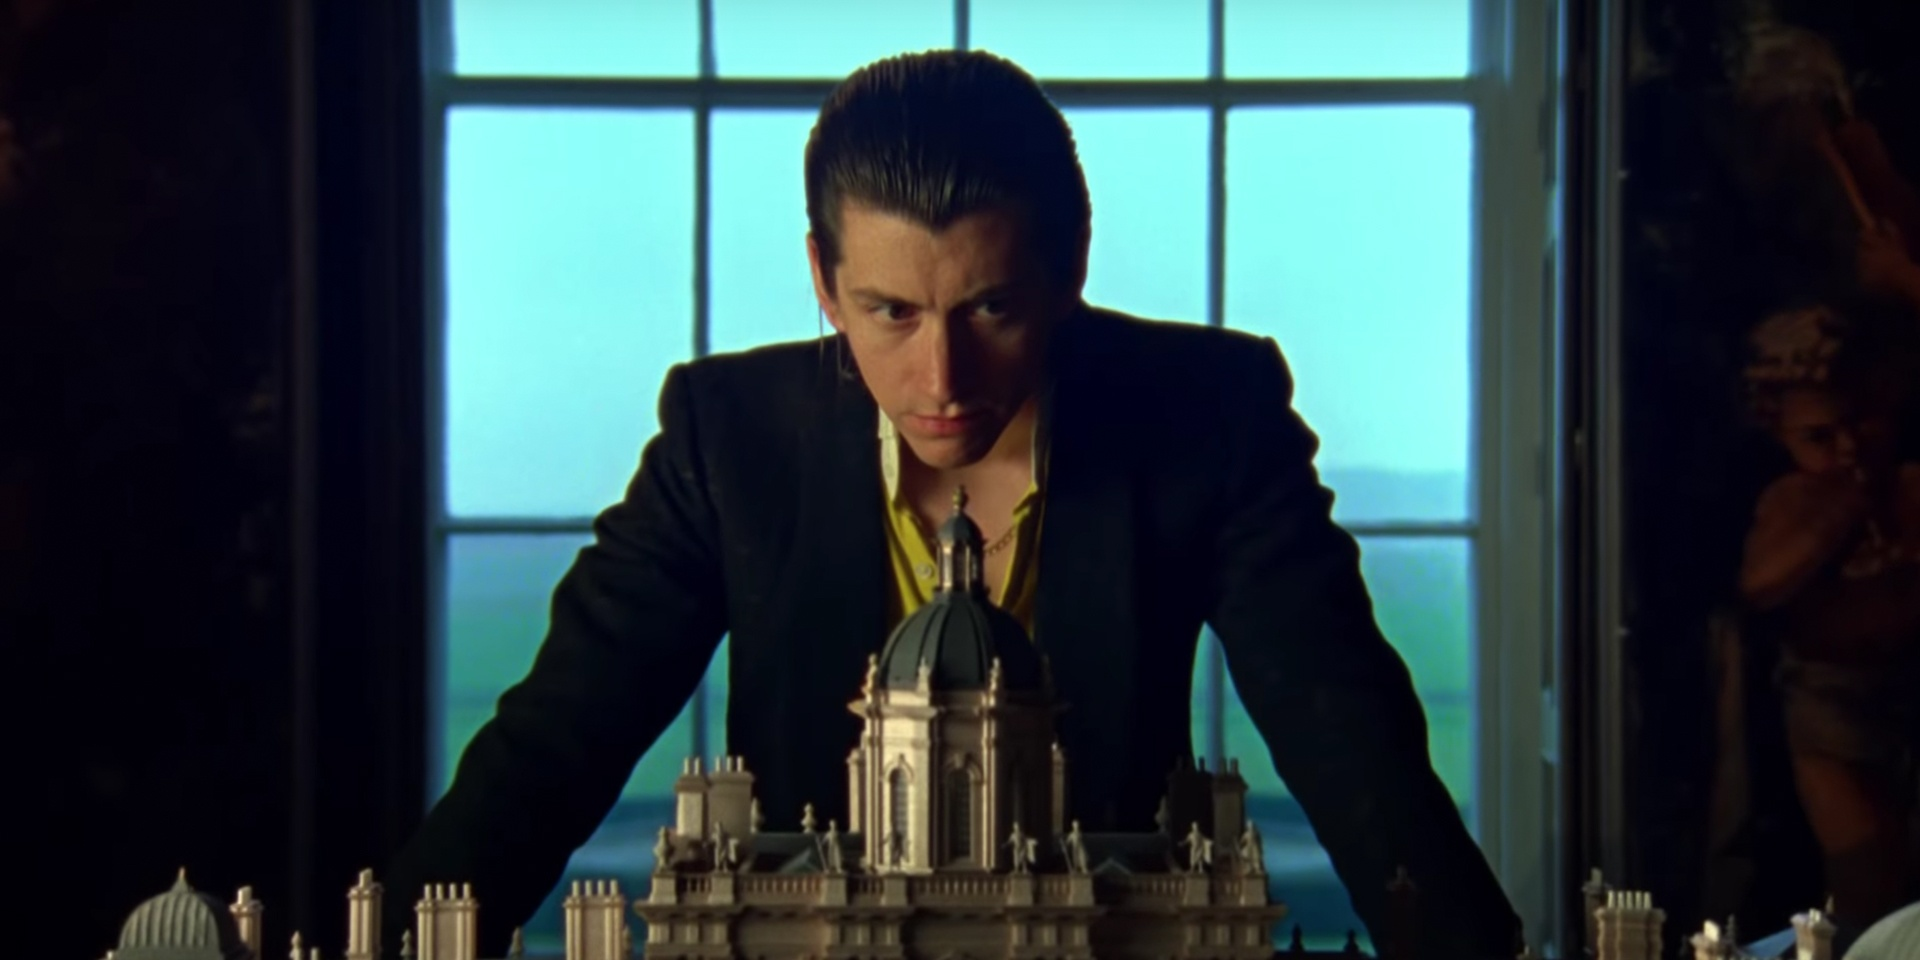 Arctic Monkeys release enigmatic new video for 'Four Out Of Five' –watch